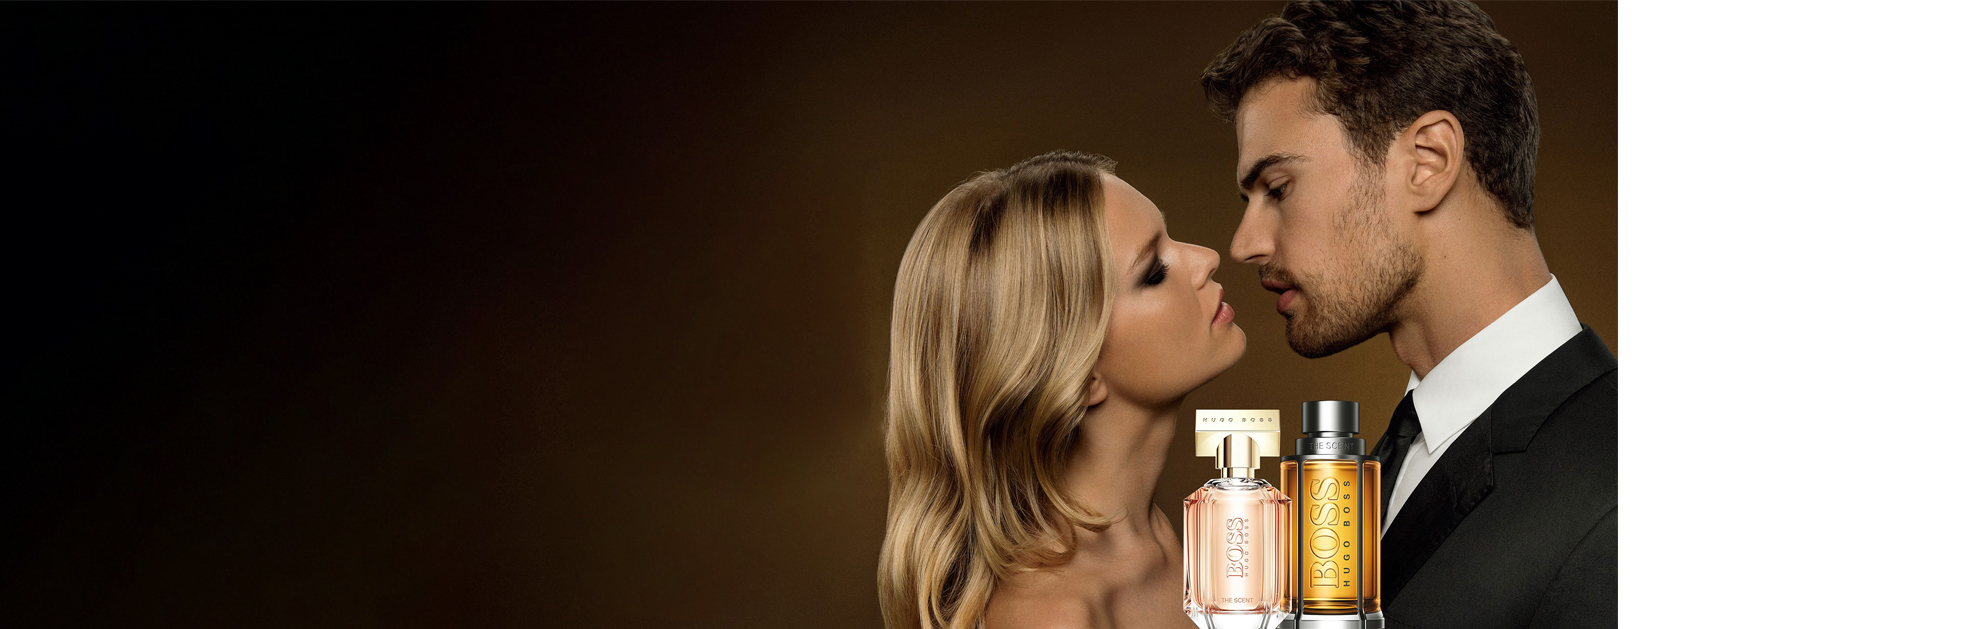 Perfum for men and women